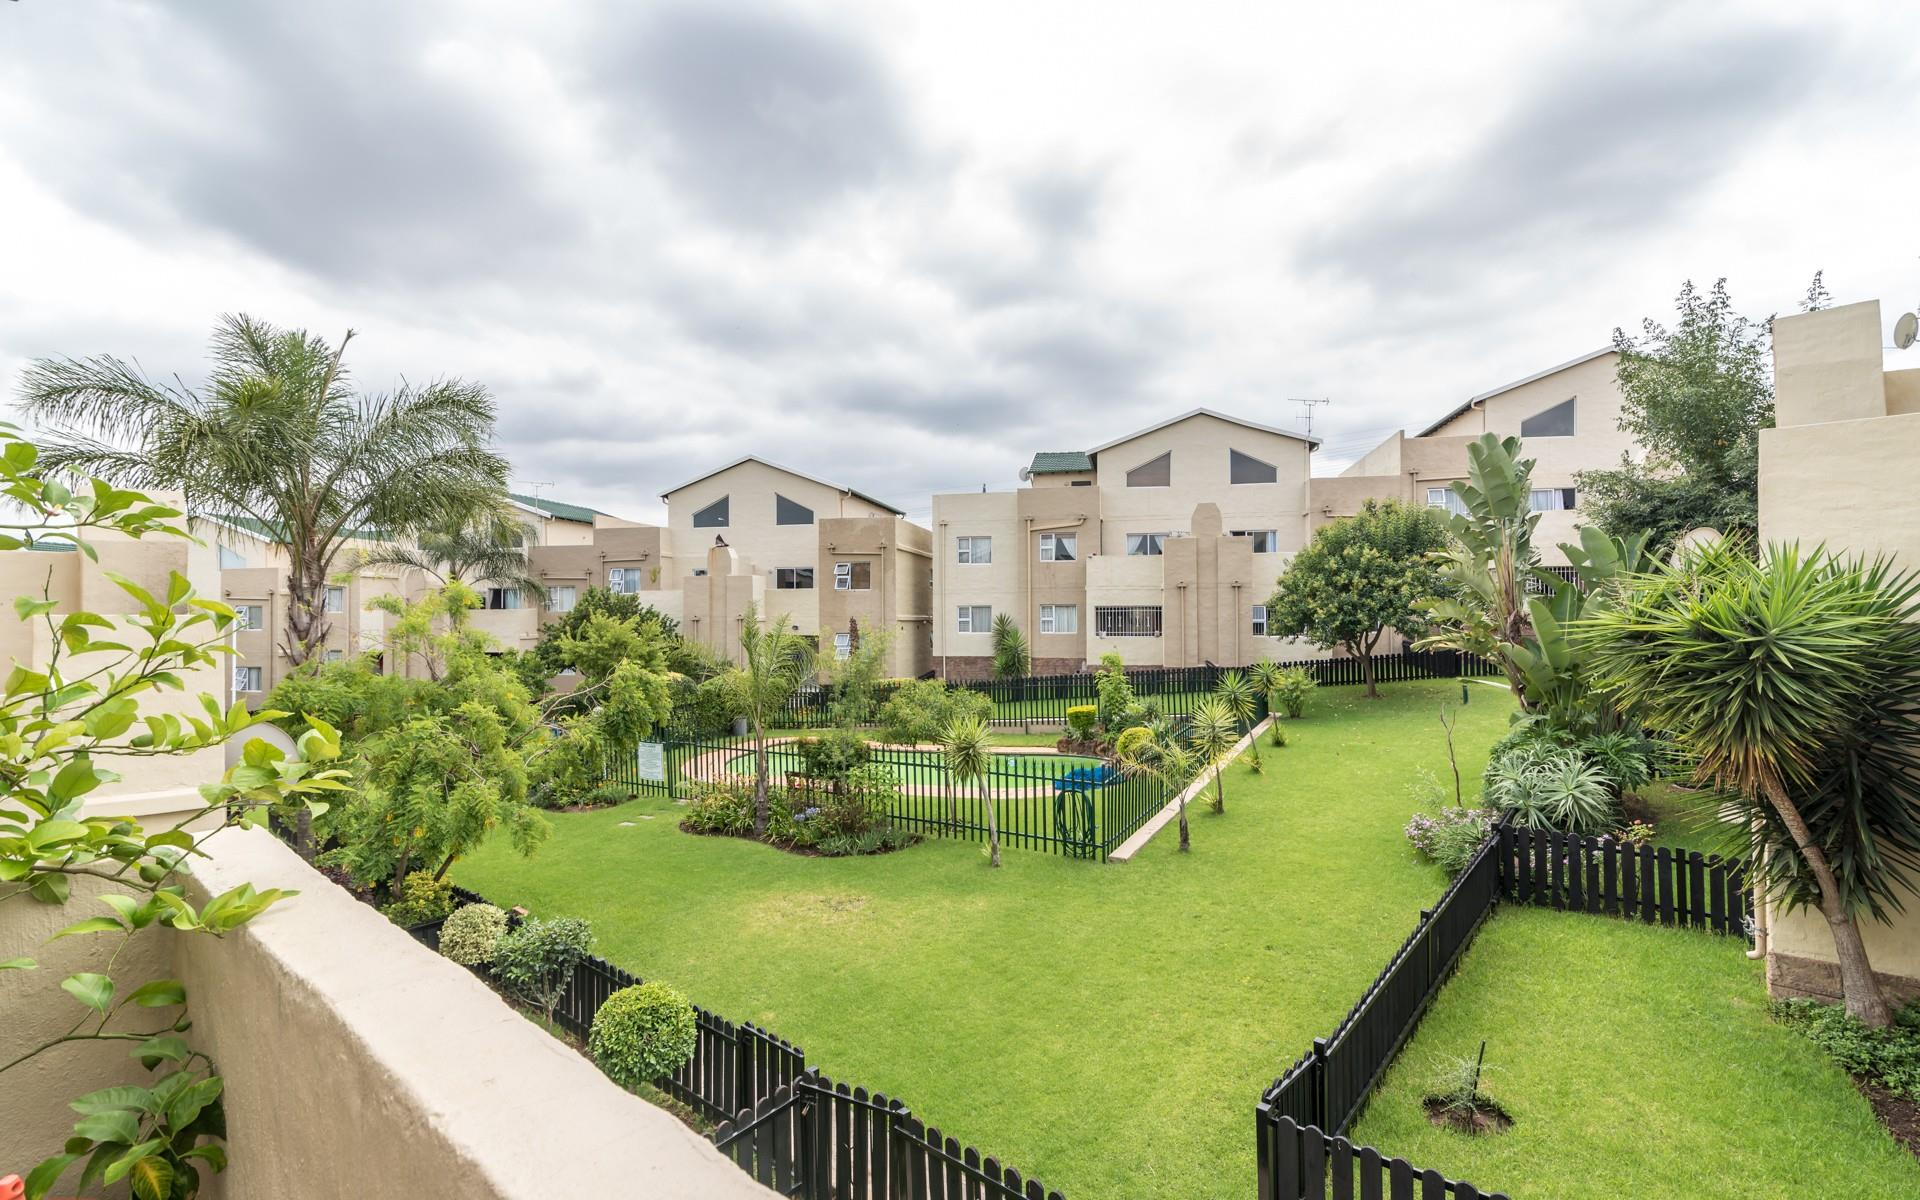 3 Bedroom Apartment / Flat For Sale in North Riding